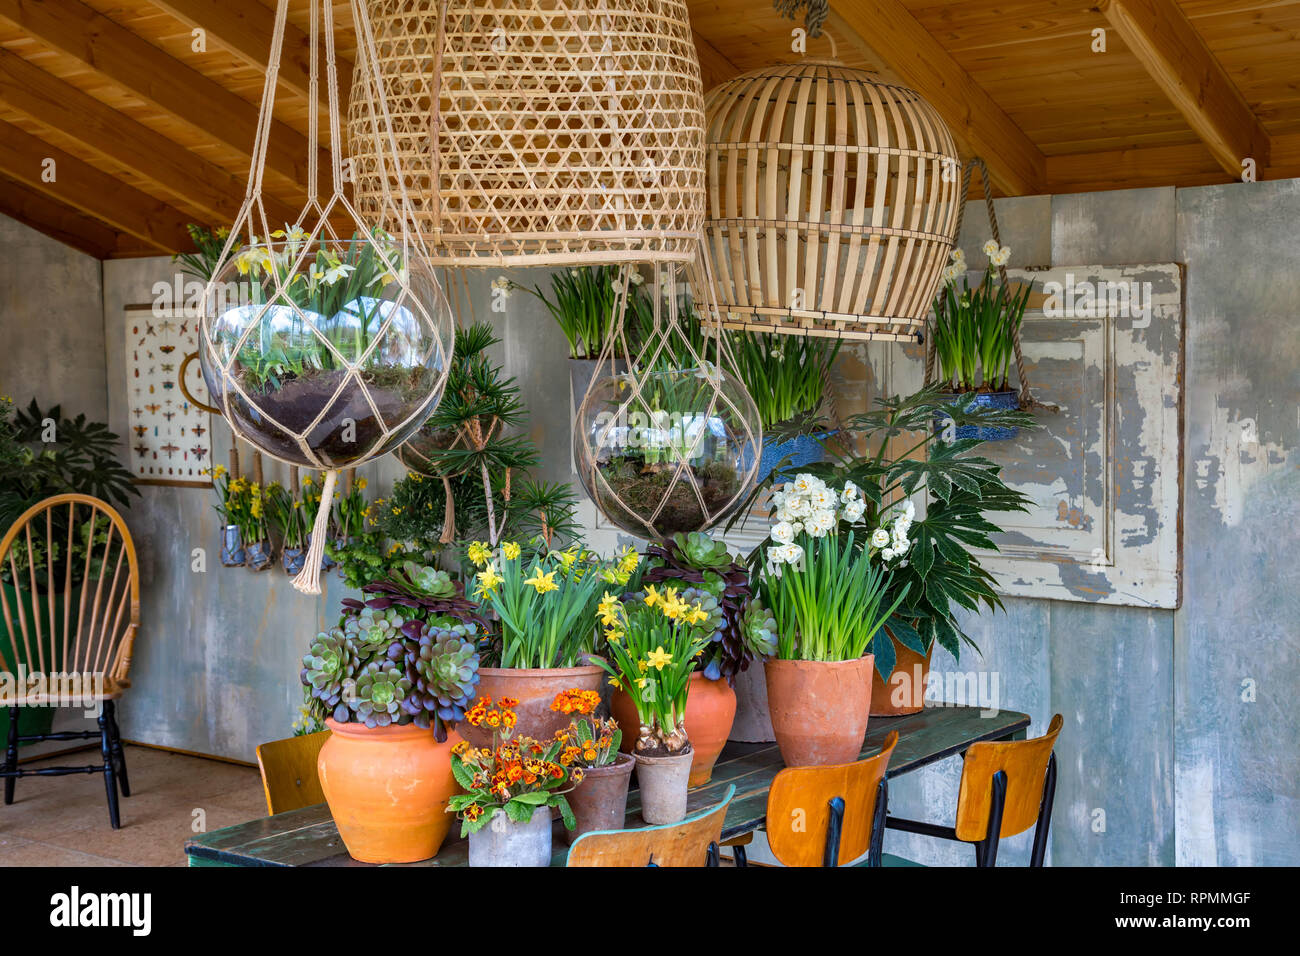 Decoration: Several spring plants in clay pots on a table ...